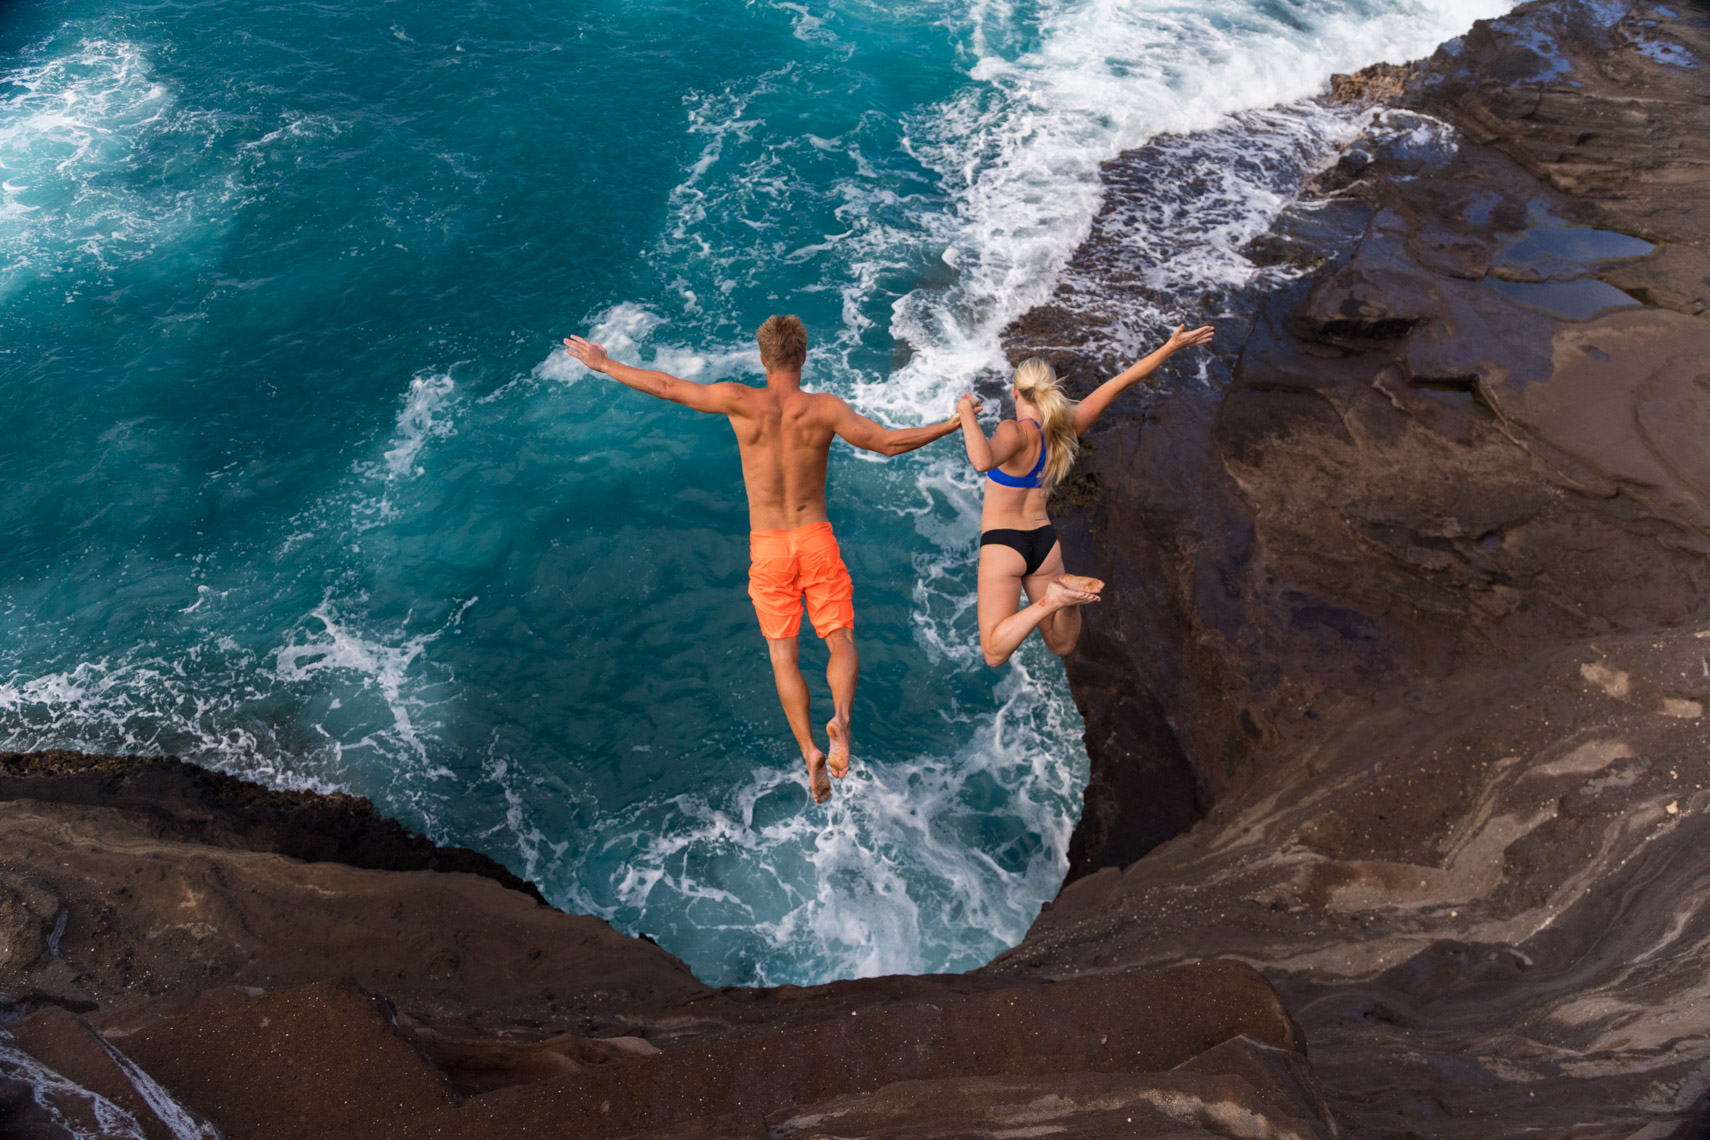 27-Active-Lifestyle-Cliff-Diving-Couple